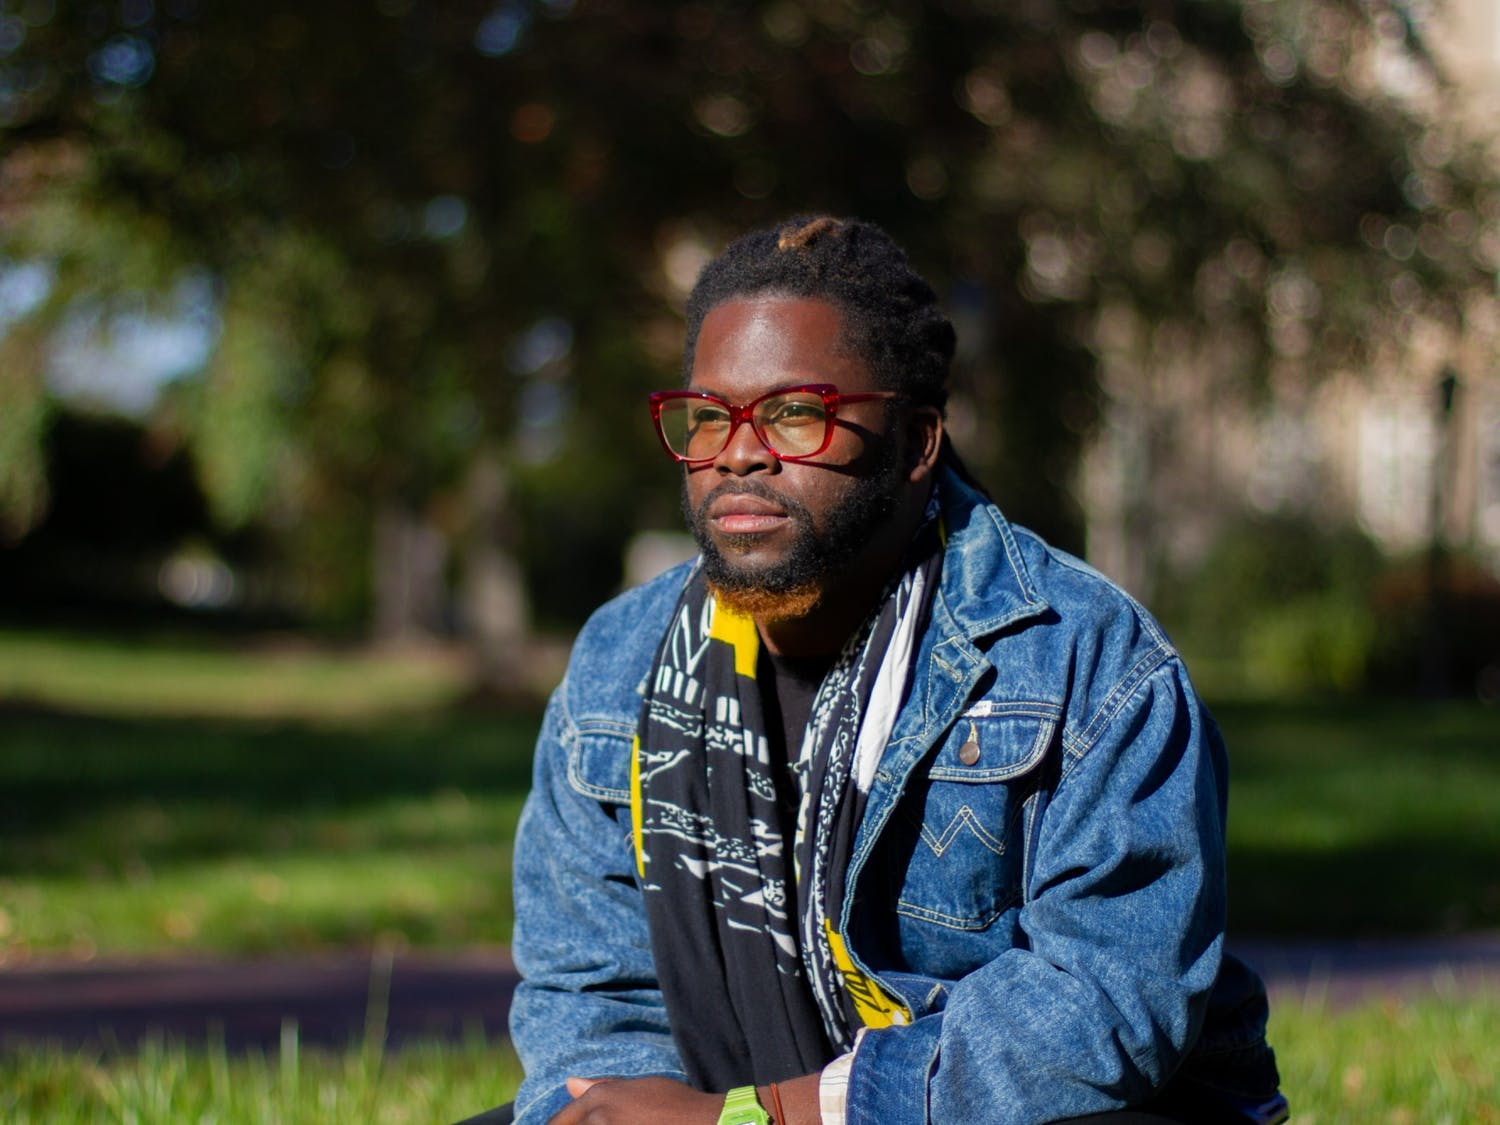 """CJ Suitt, Chapel Hill's first-ever Poet Laureate, poses for a portrait in Chapel Hill on Wednesday, Nov. 4, 2020. """"There's a lot of hope and uncertainty right now,"""" Suitt said."""